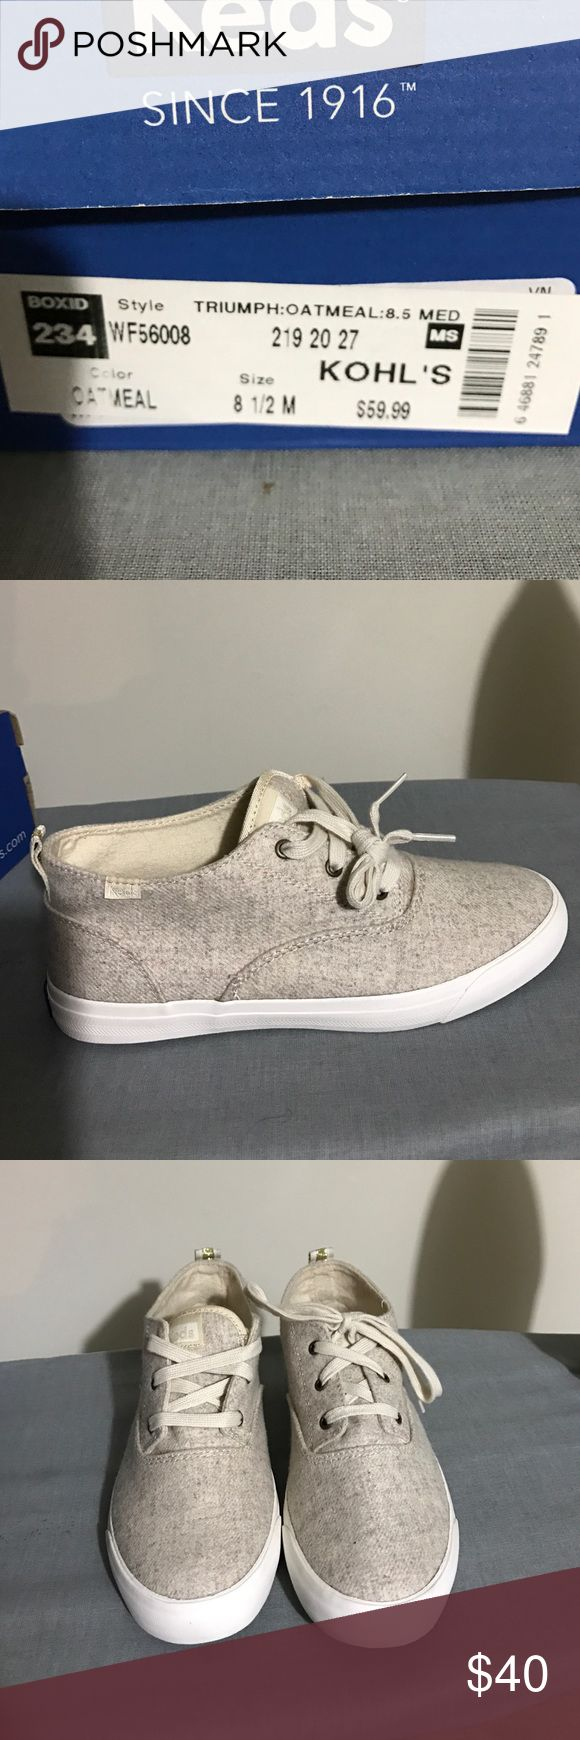 Keds sneakers Oatmeal color Keds Sneaker. NWOT. Never worn. Love them, but a tad bit too big for me. Keds Shoes Sneakers